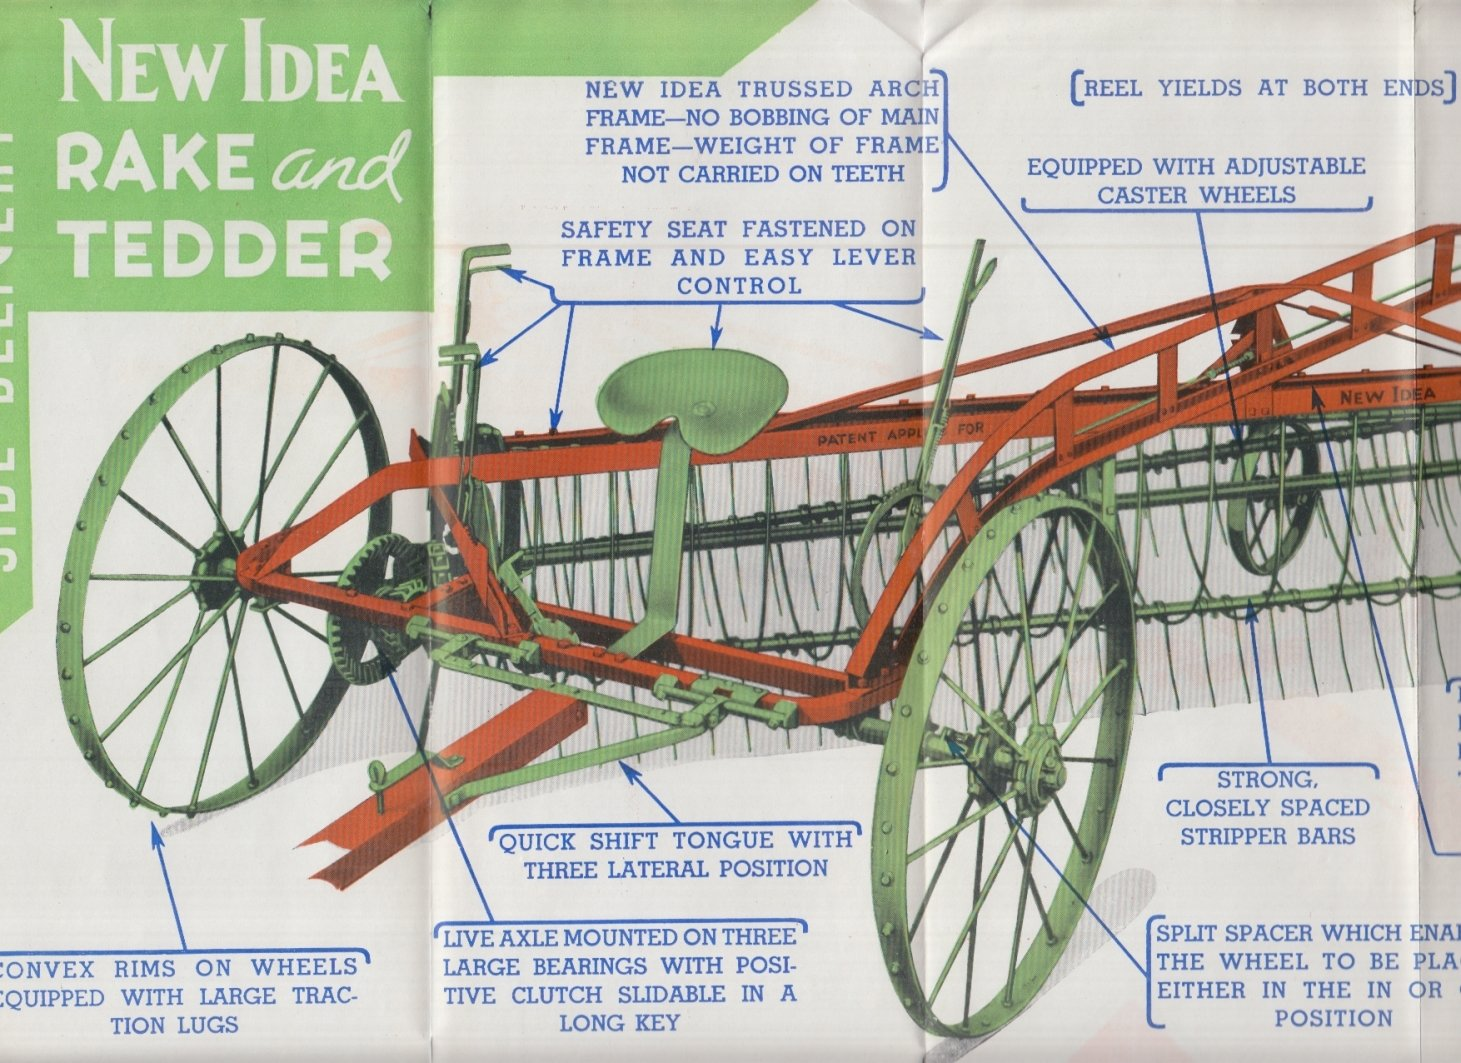 10 Great New Idea Hay Rake Parts new idea side delivery rake tedder sales folder 1940 2020